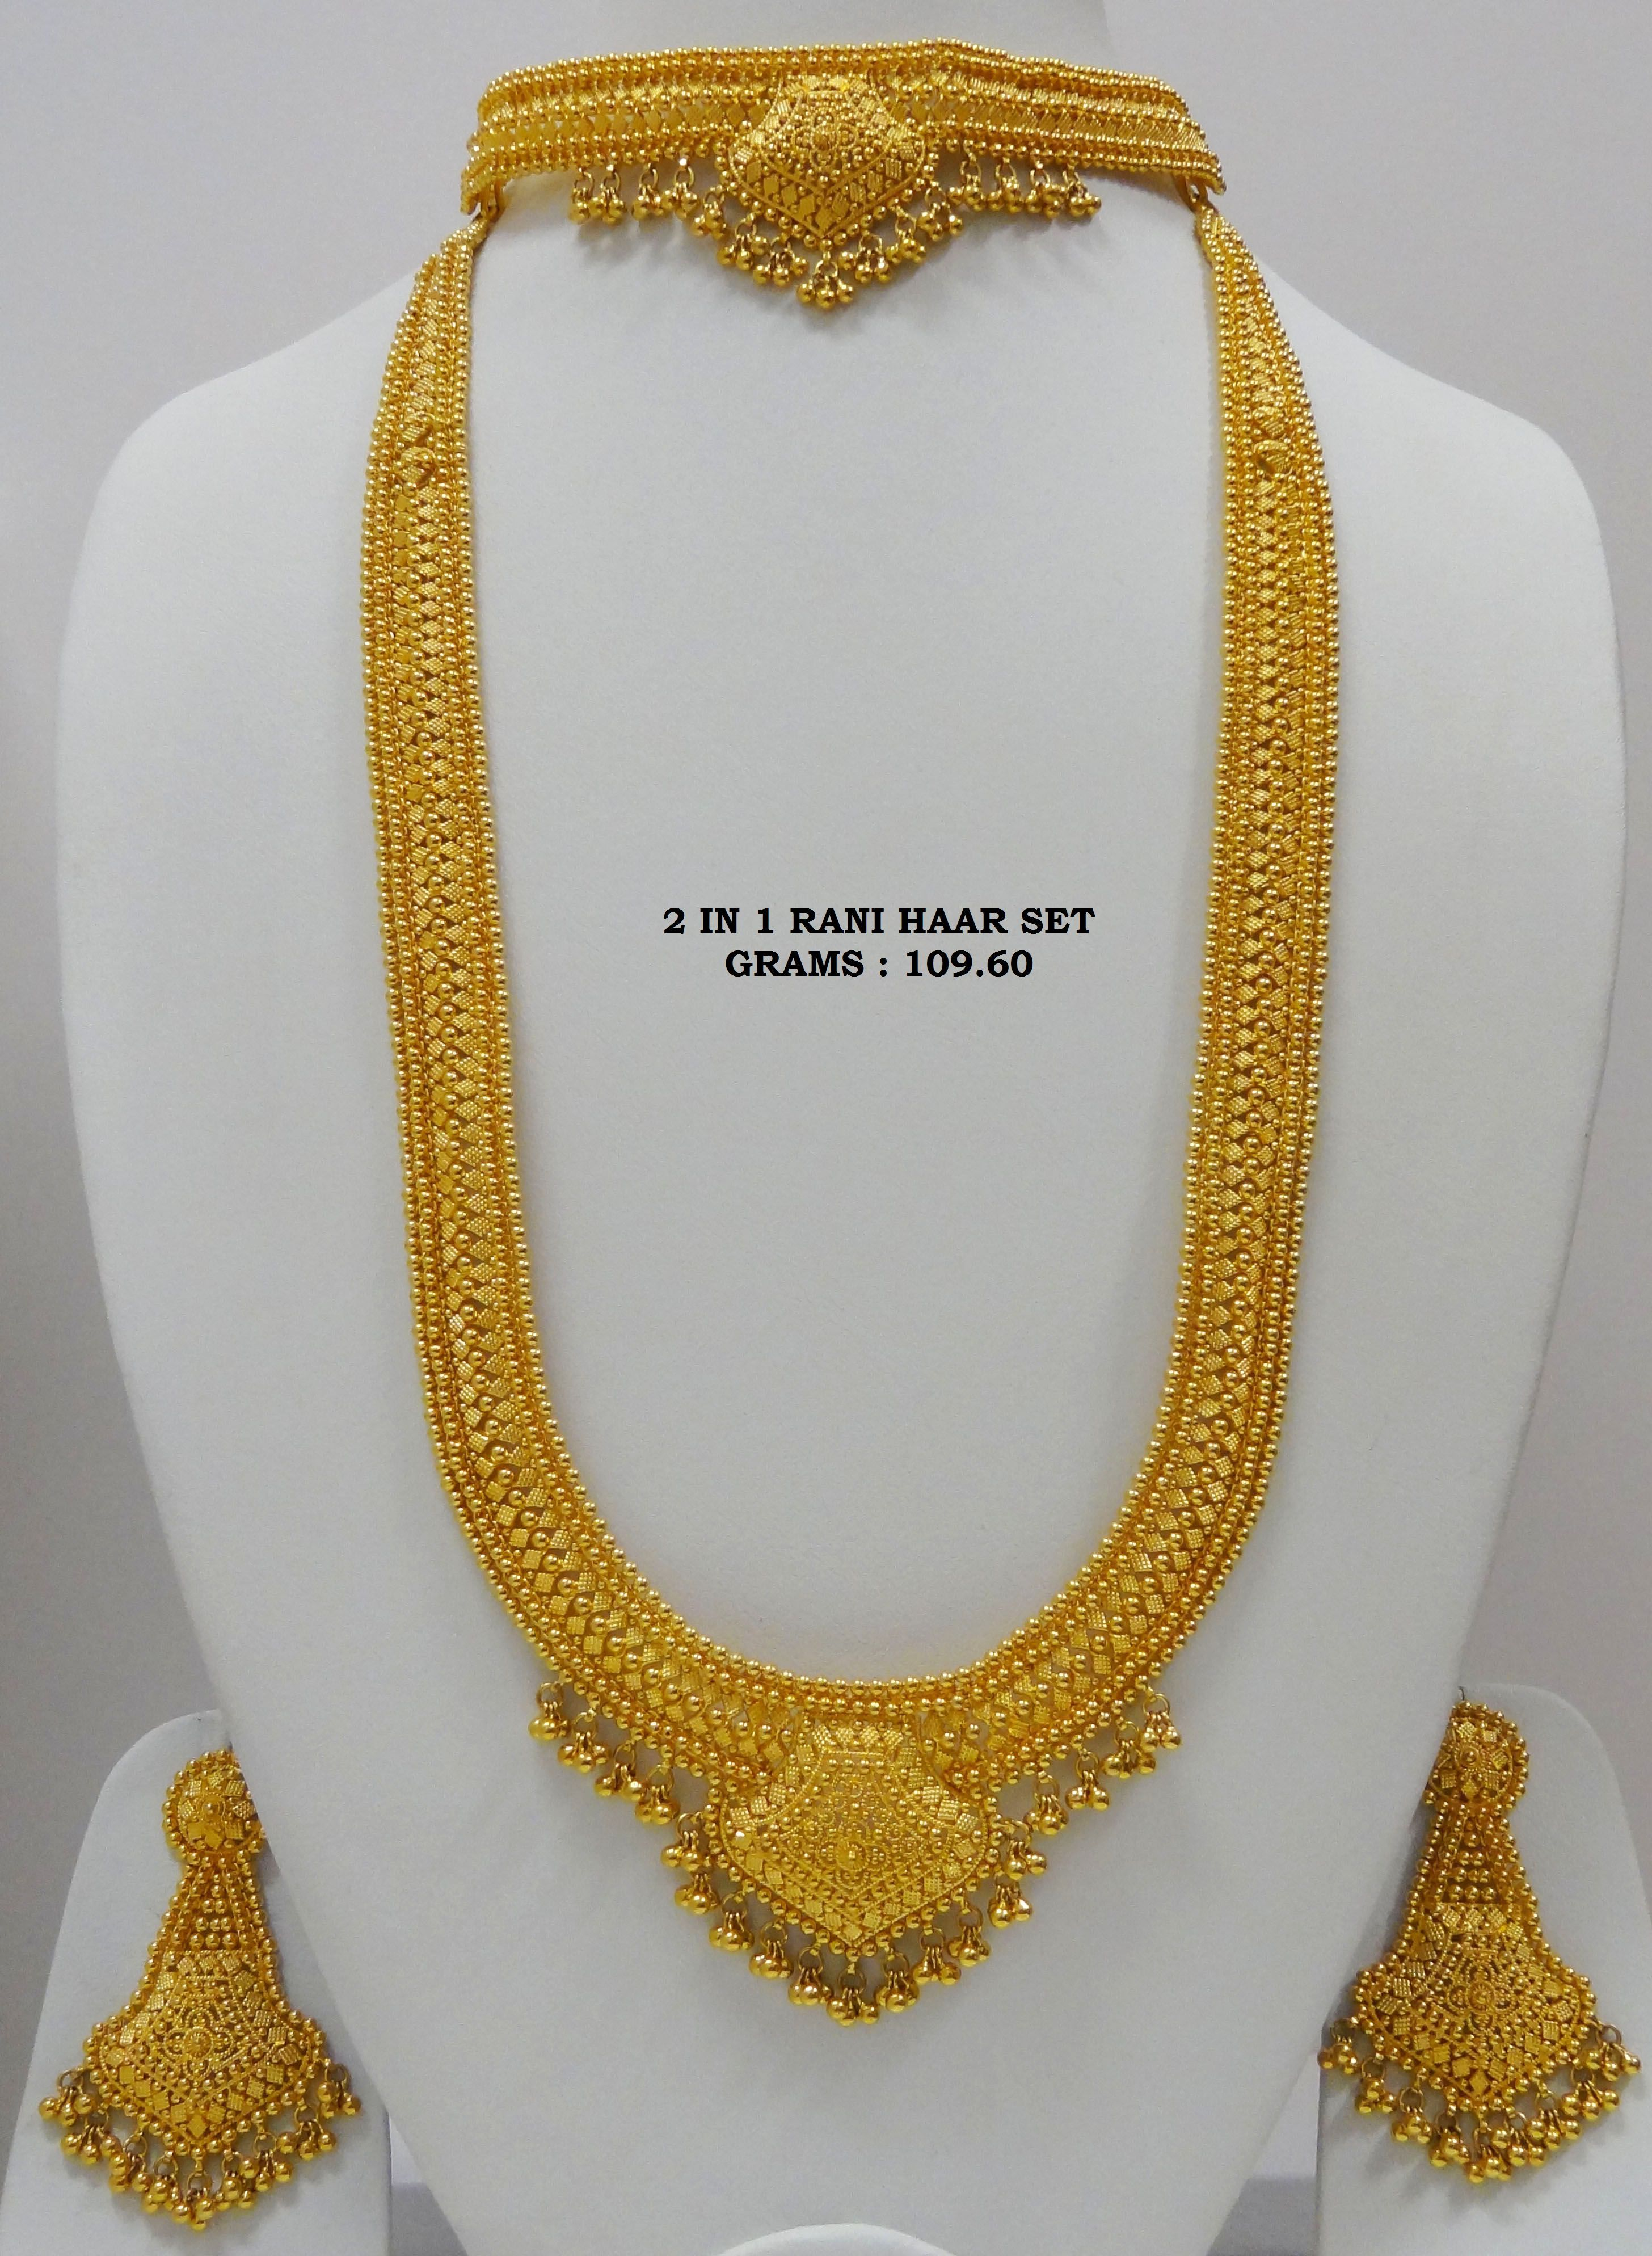 Gold rani haar pictures to pin on pinterest - 22ct Gold Necklace Set Google Search